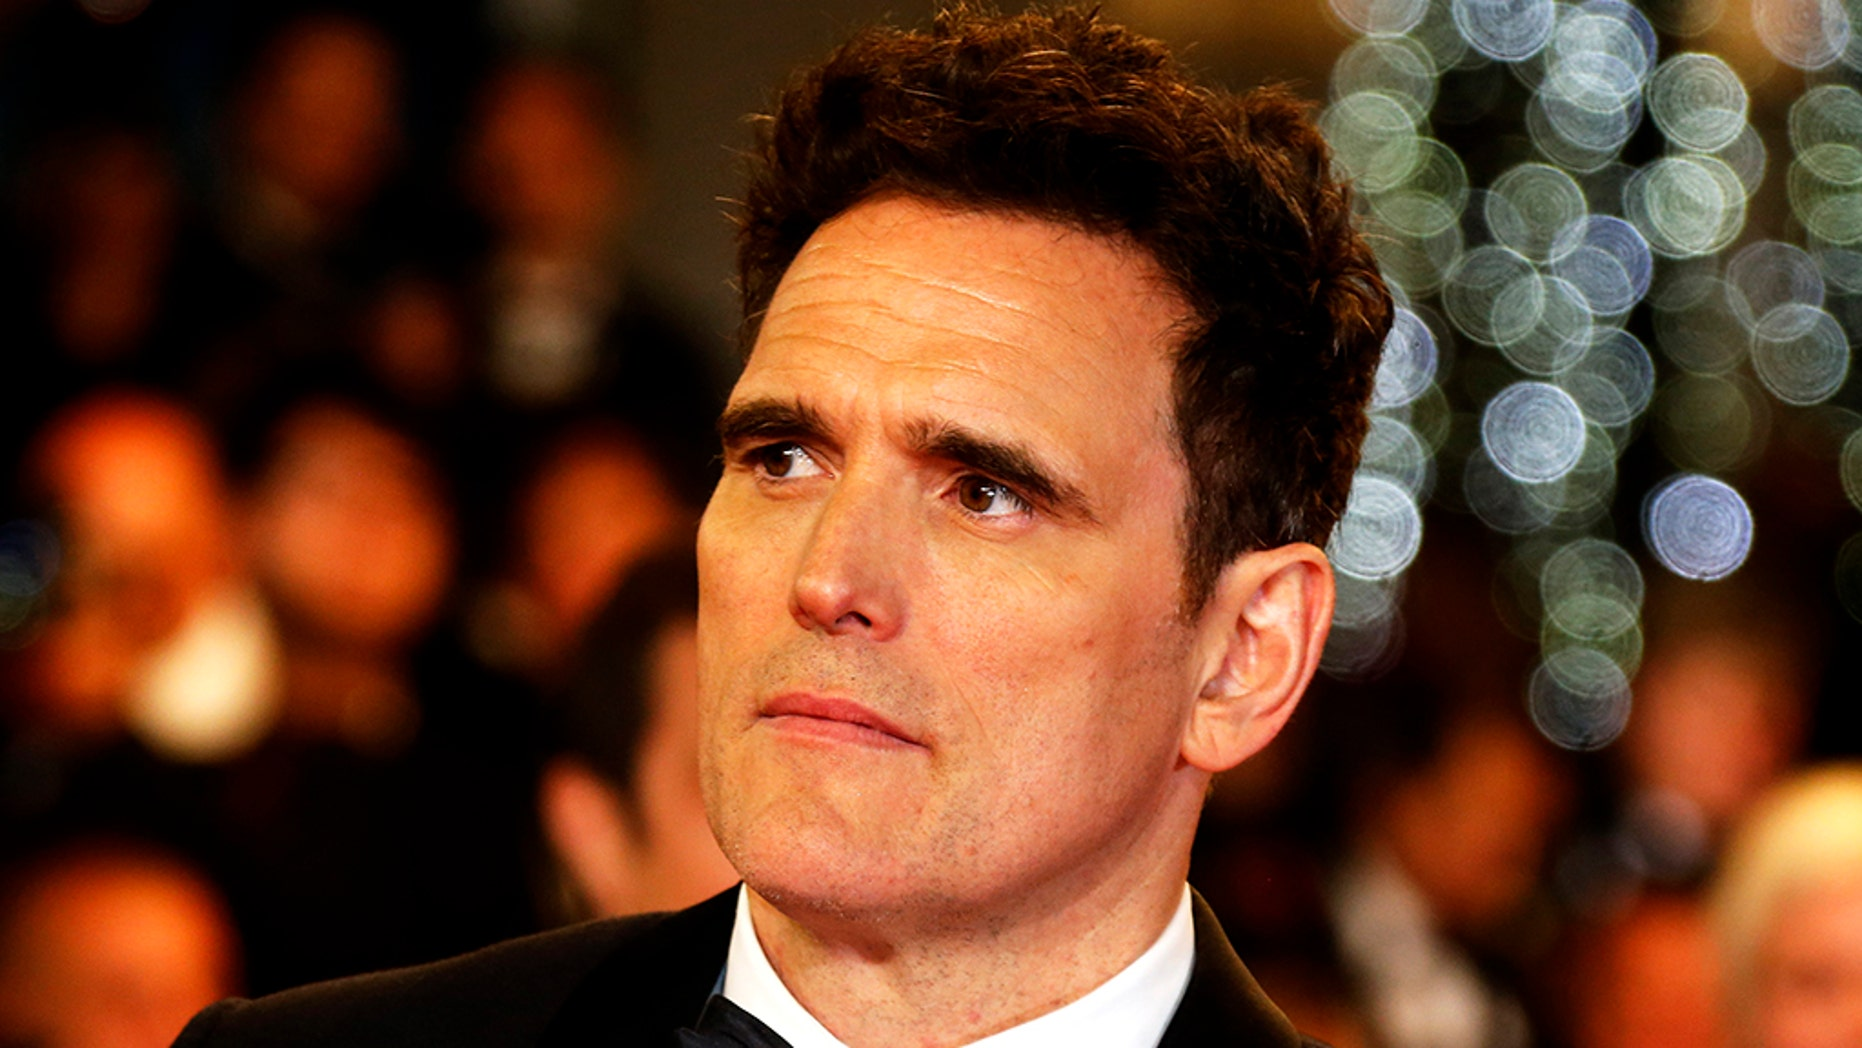 Matt Dillon says he's 'ok that people are upset' over his new film 'The House That Jack Built.'